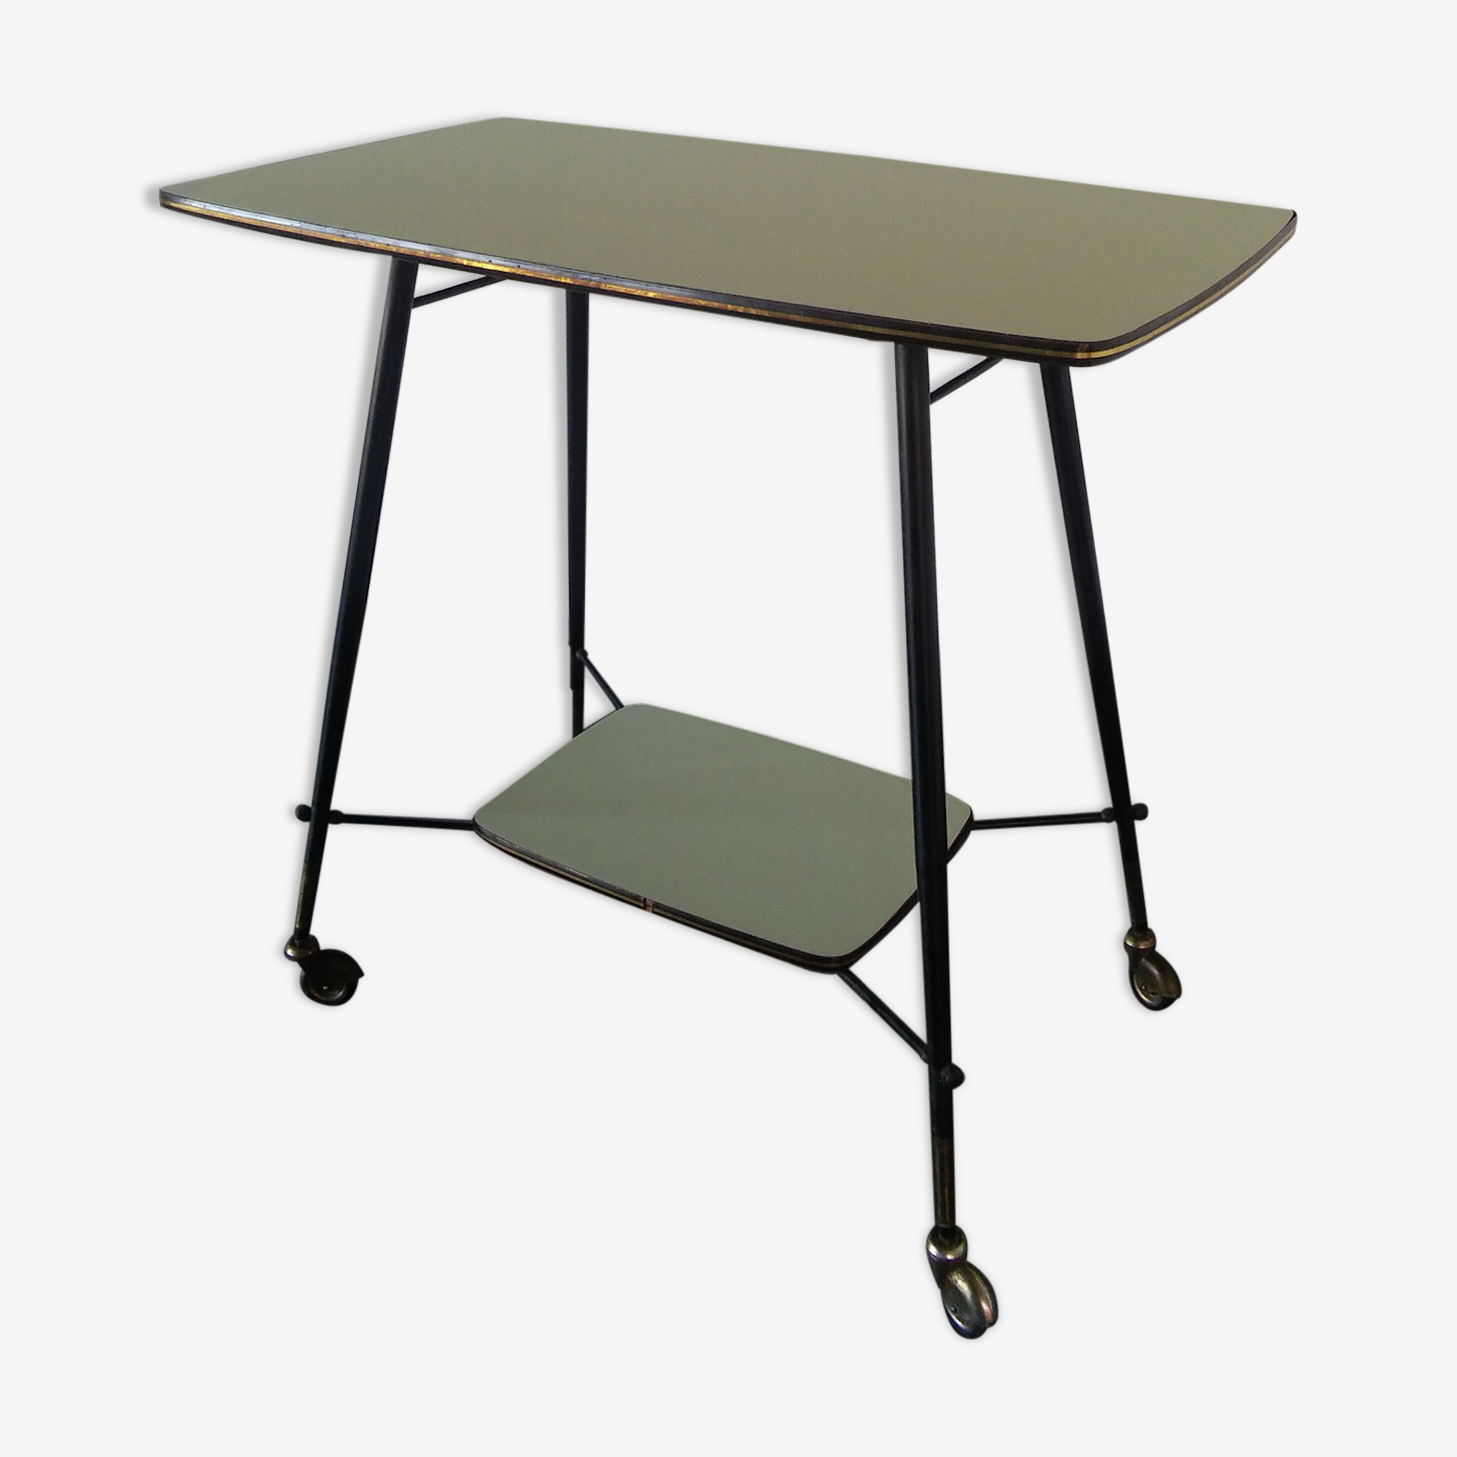 Serving table 1950